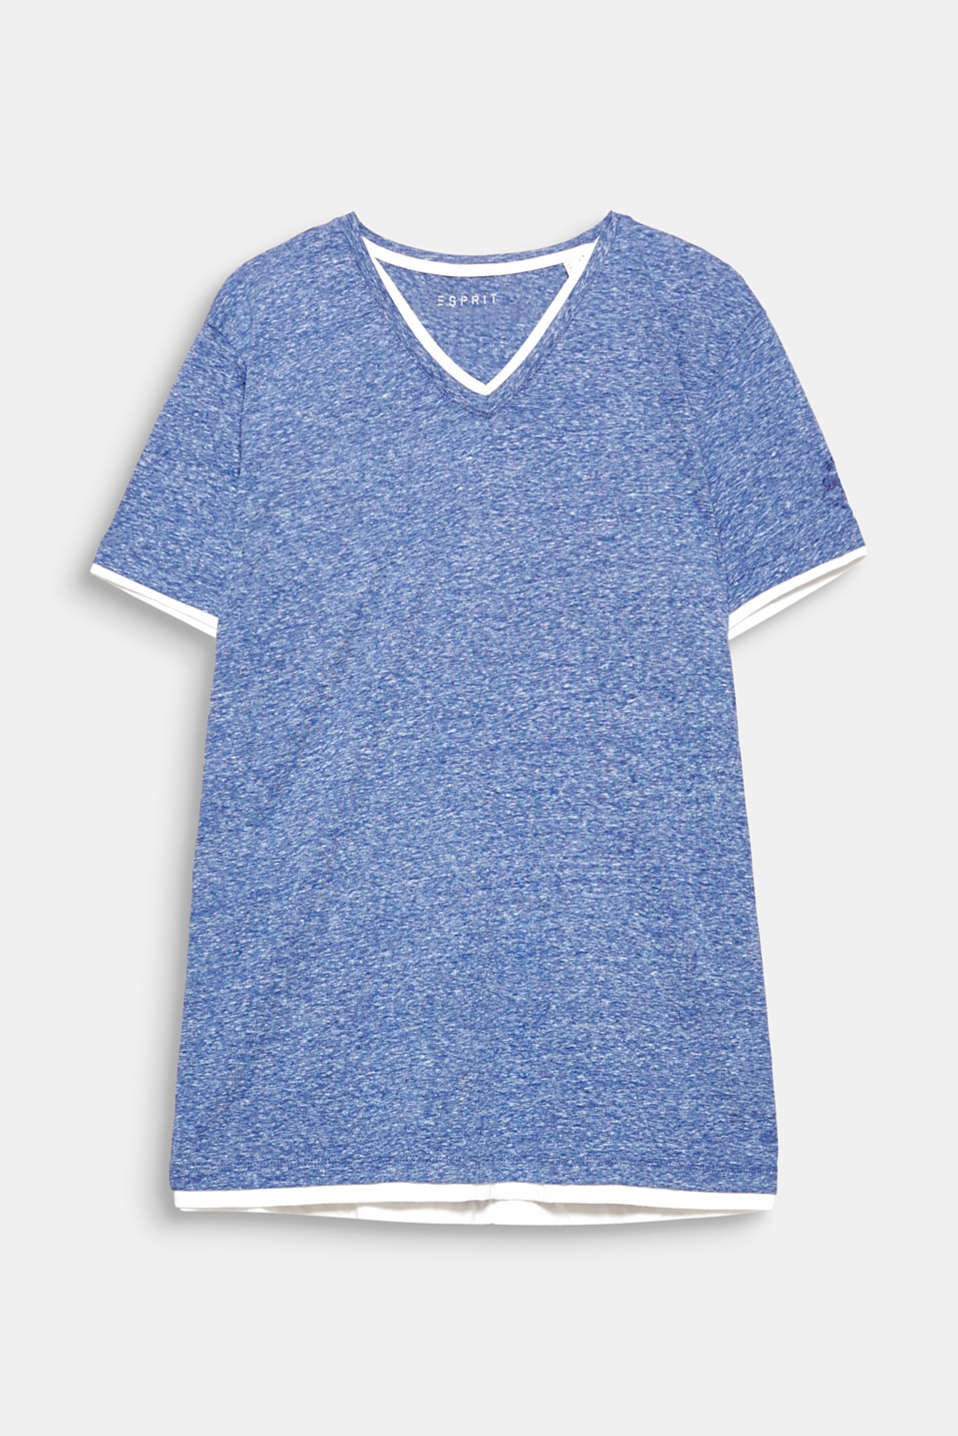 We love layering! Contrasting colour trim gives this T-shirt an exciting layered look.